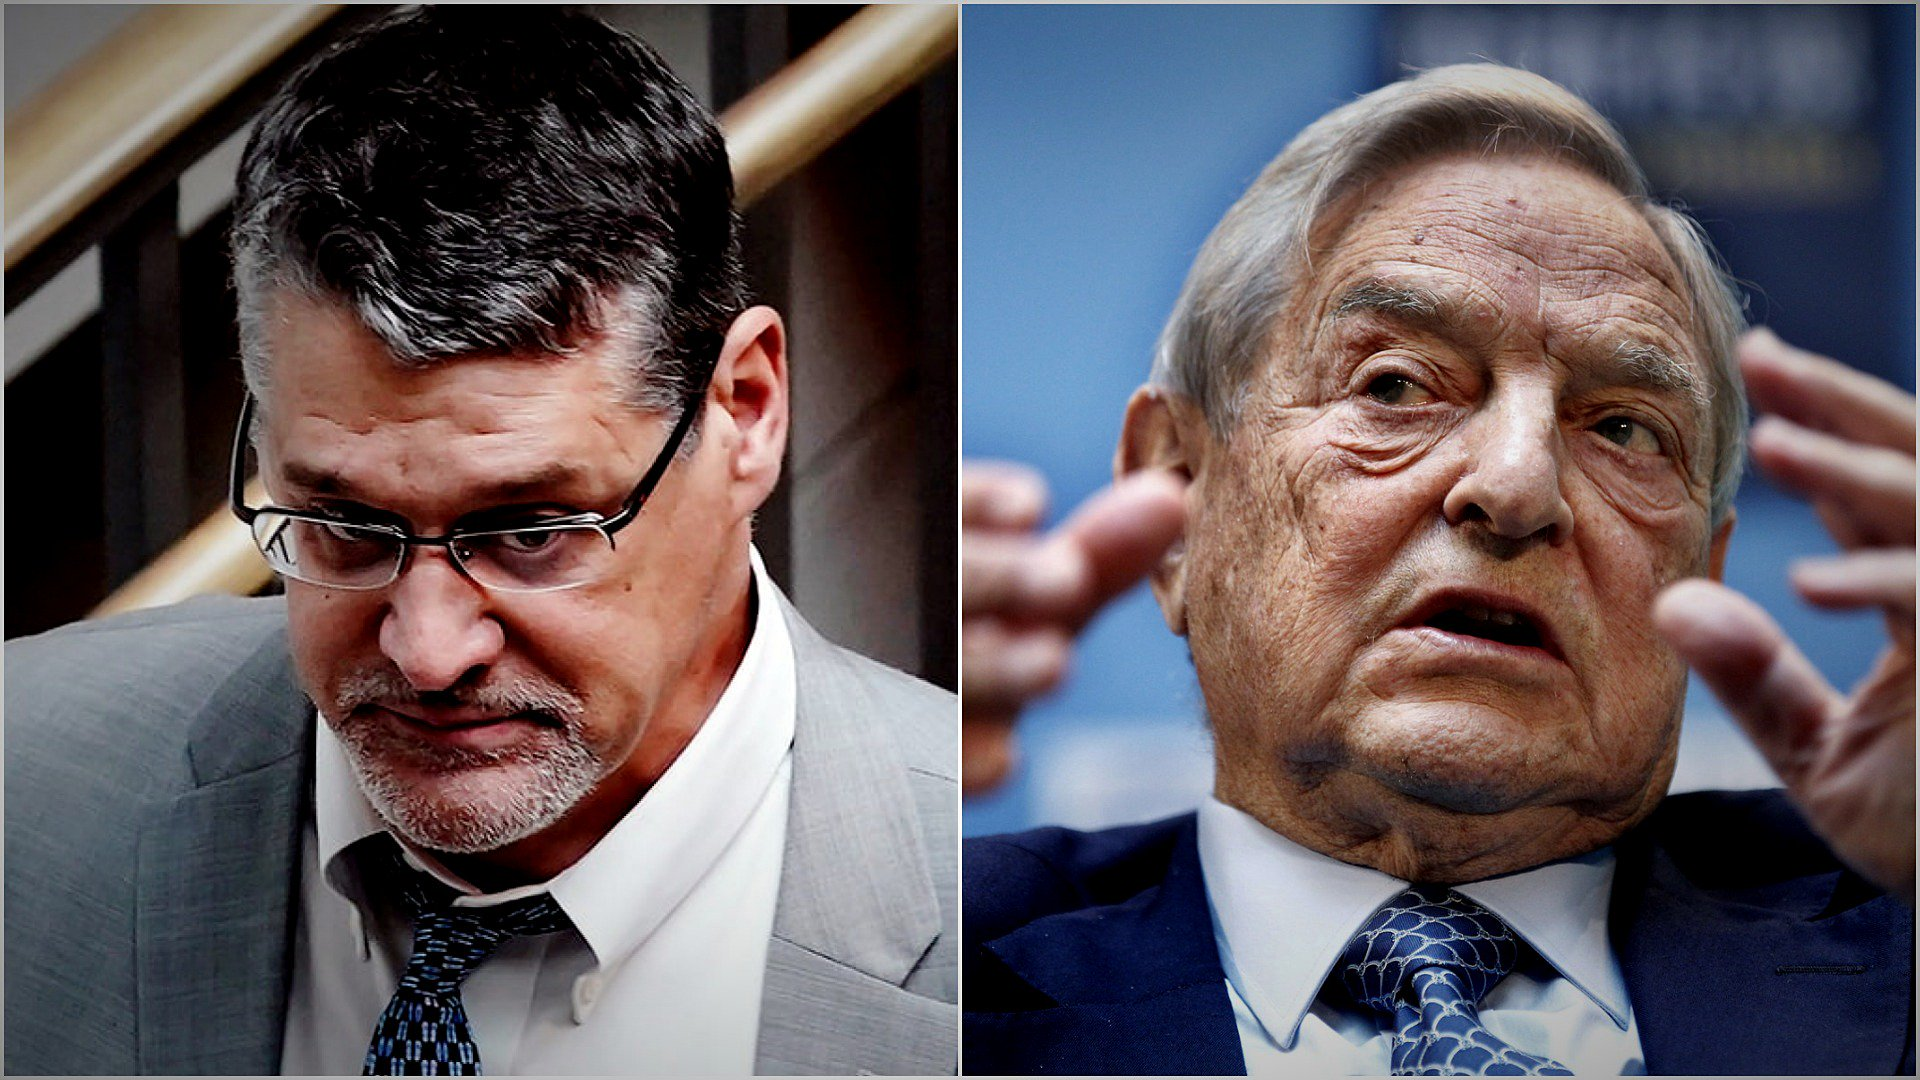 Russian Billionaire: Fusion GPS Funded By George Soros & Mystery Silicon Valley Elites https://t.co/Vwf8Zz61qi https://t.co/4gUr45QwYK